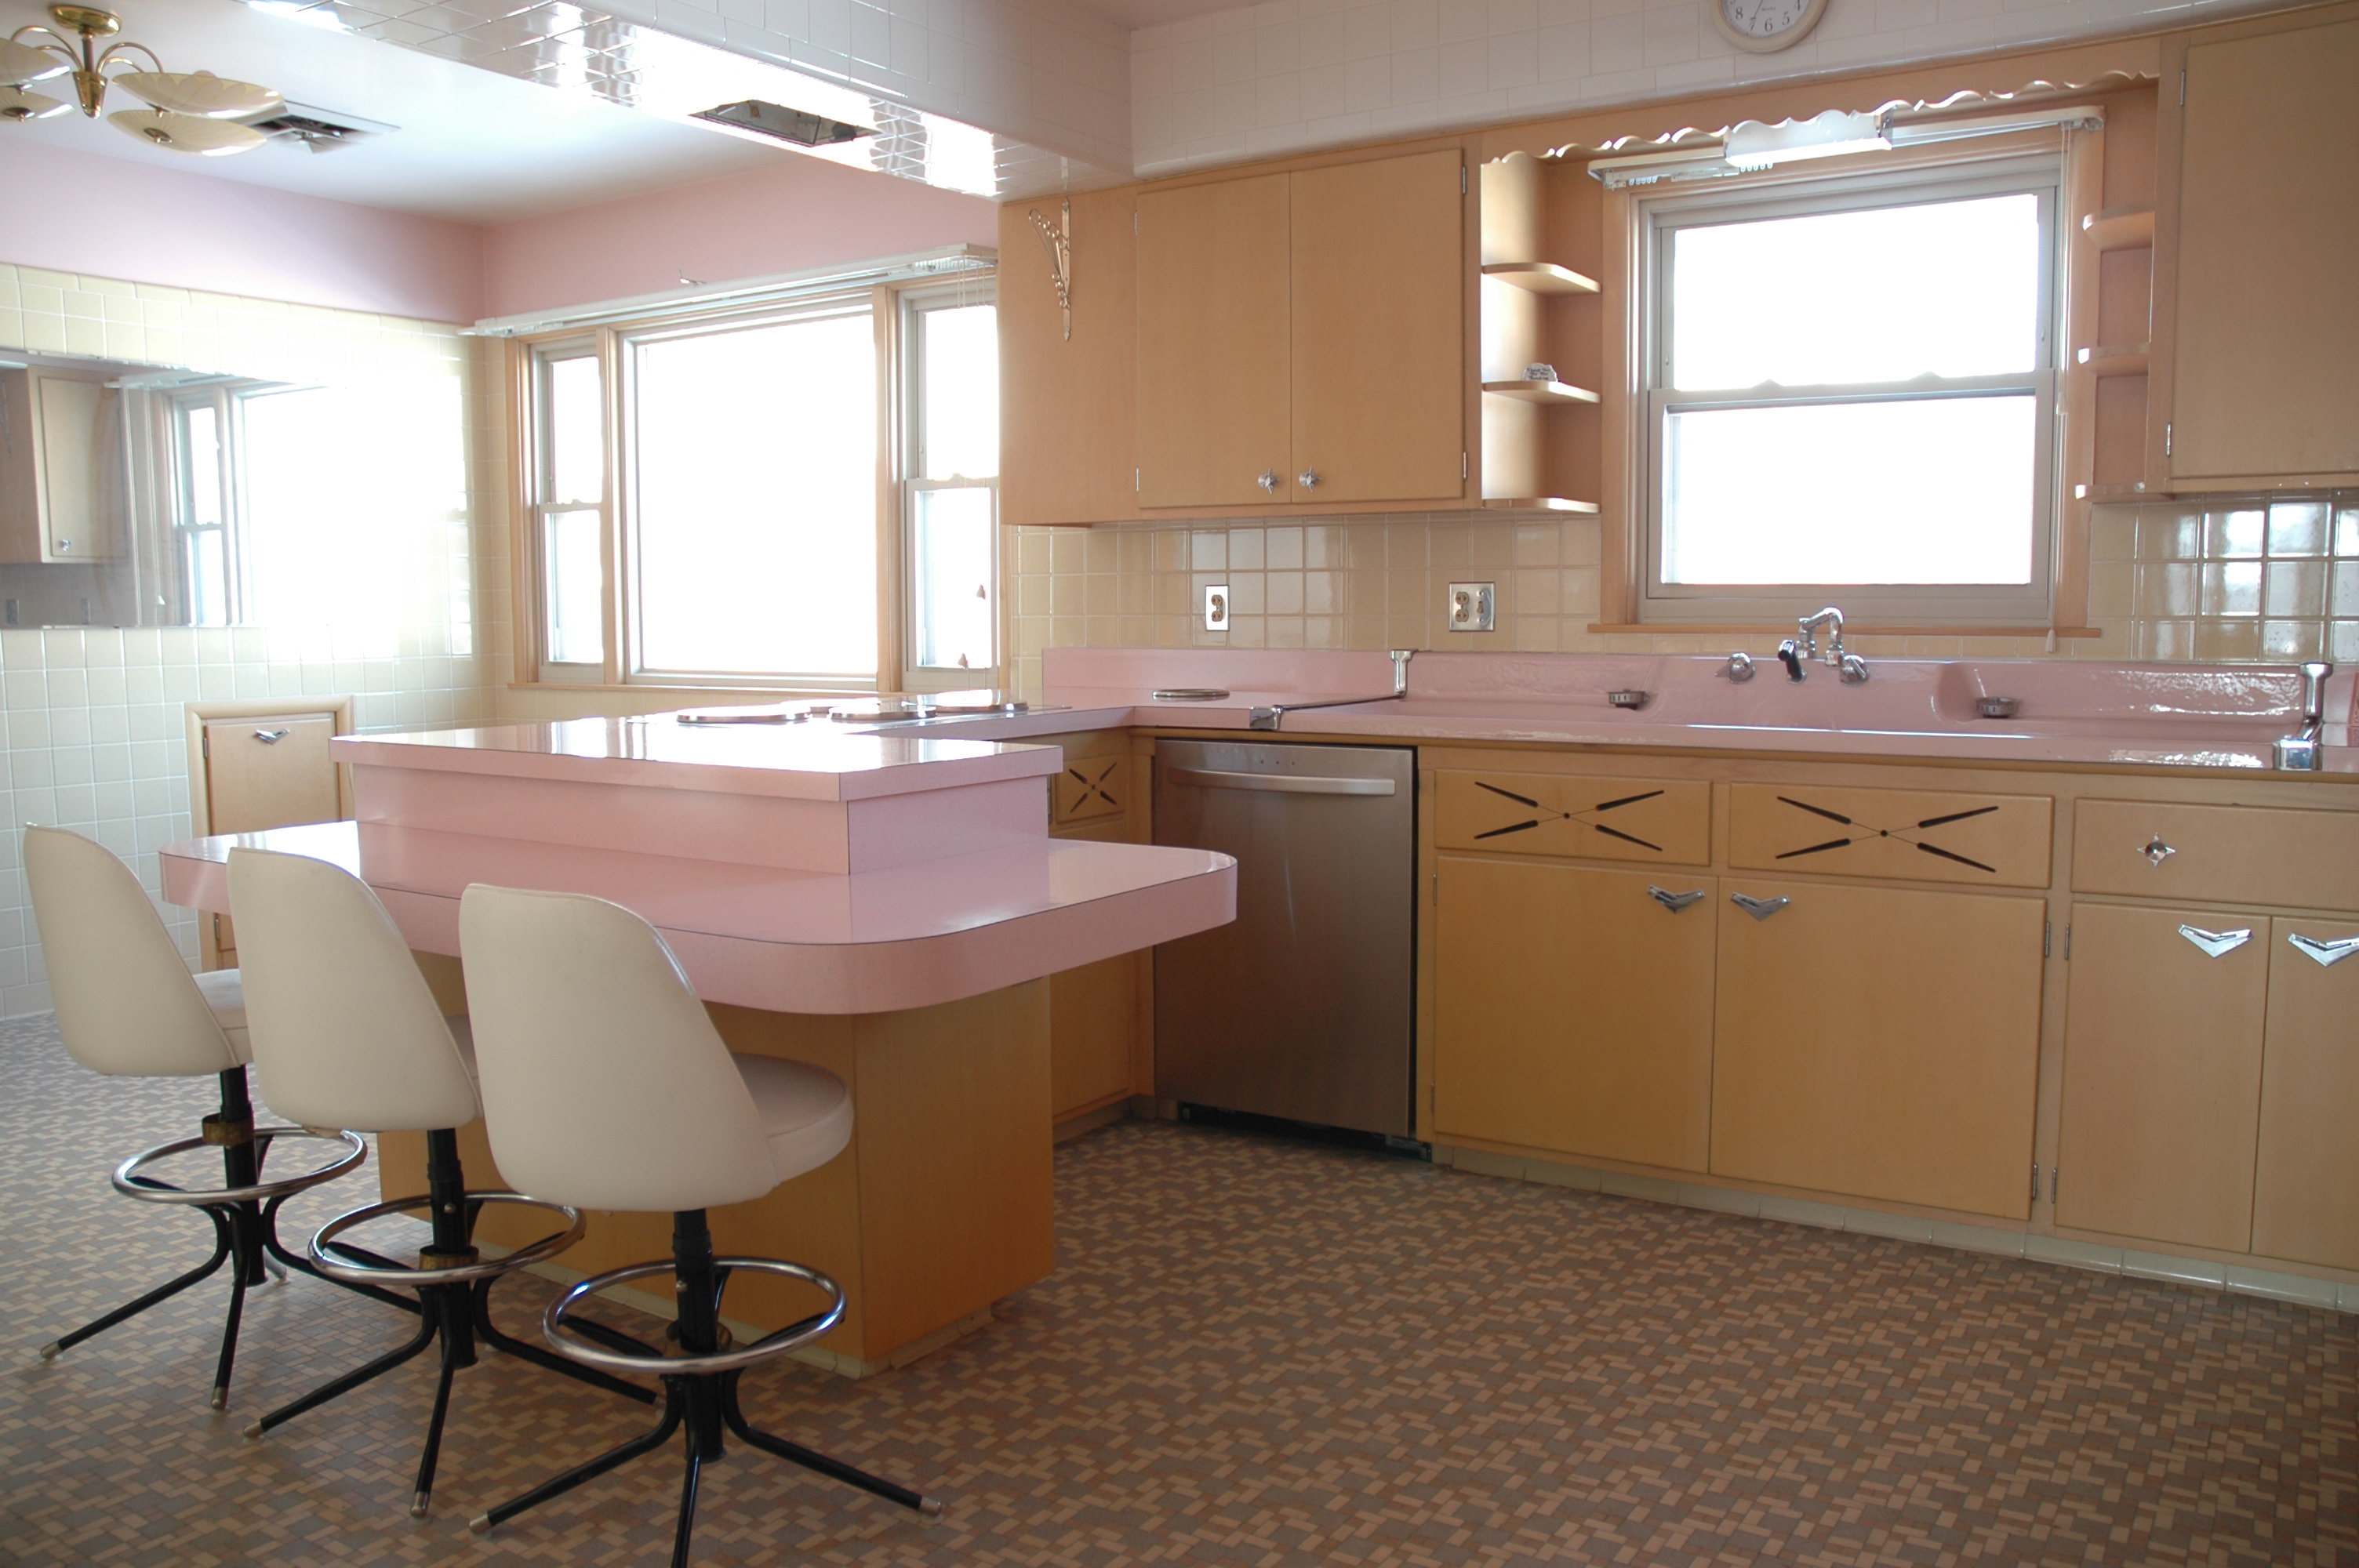 Mid Century Kitchen Remodel 20 Charming Midcentury Kitchens Ranked From Virtually Untouched